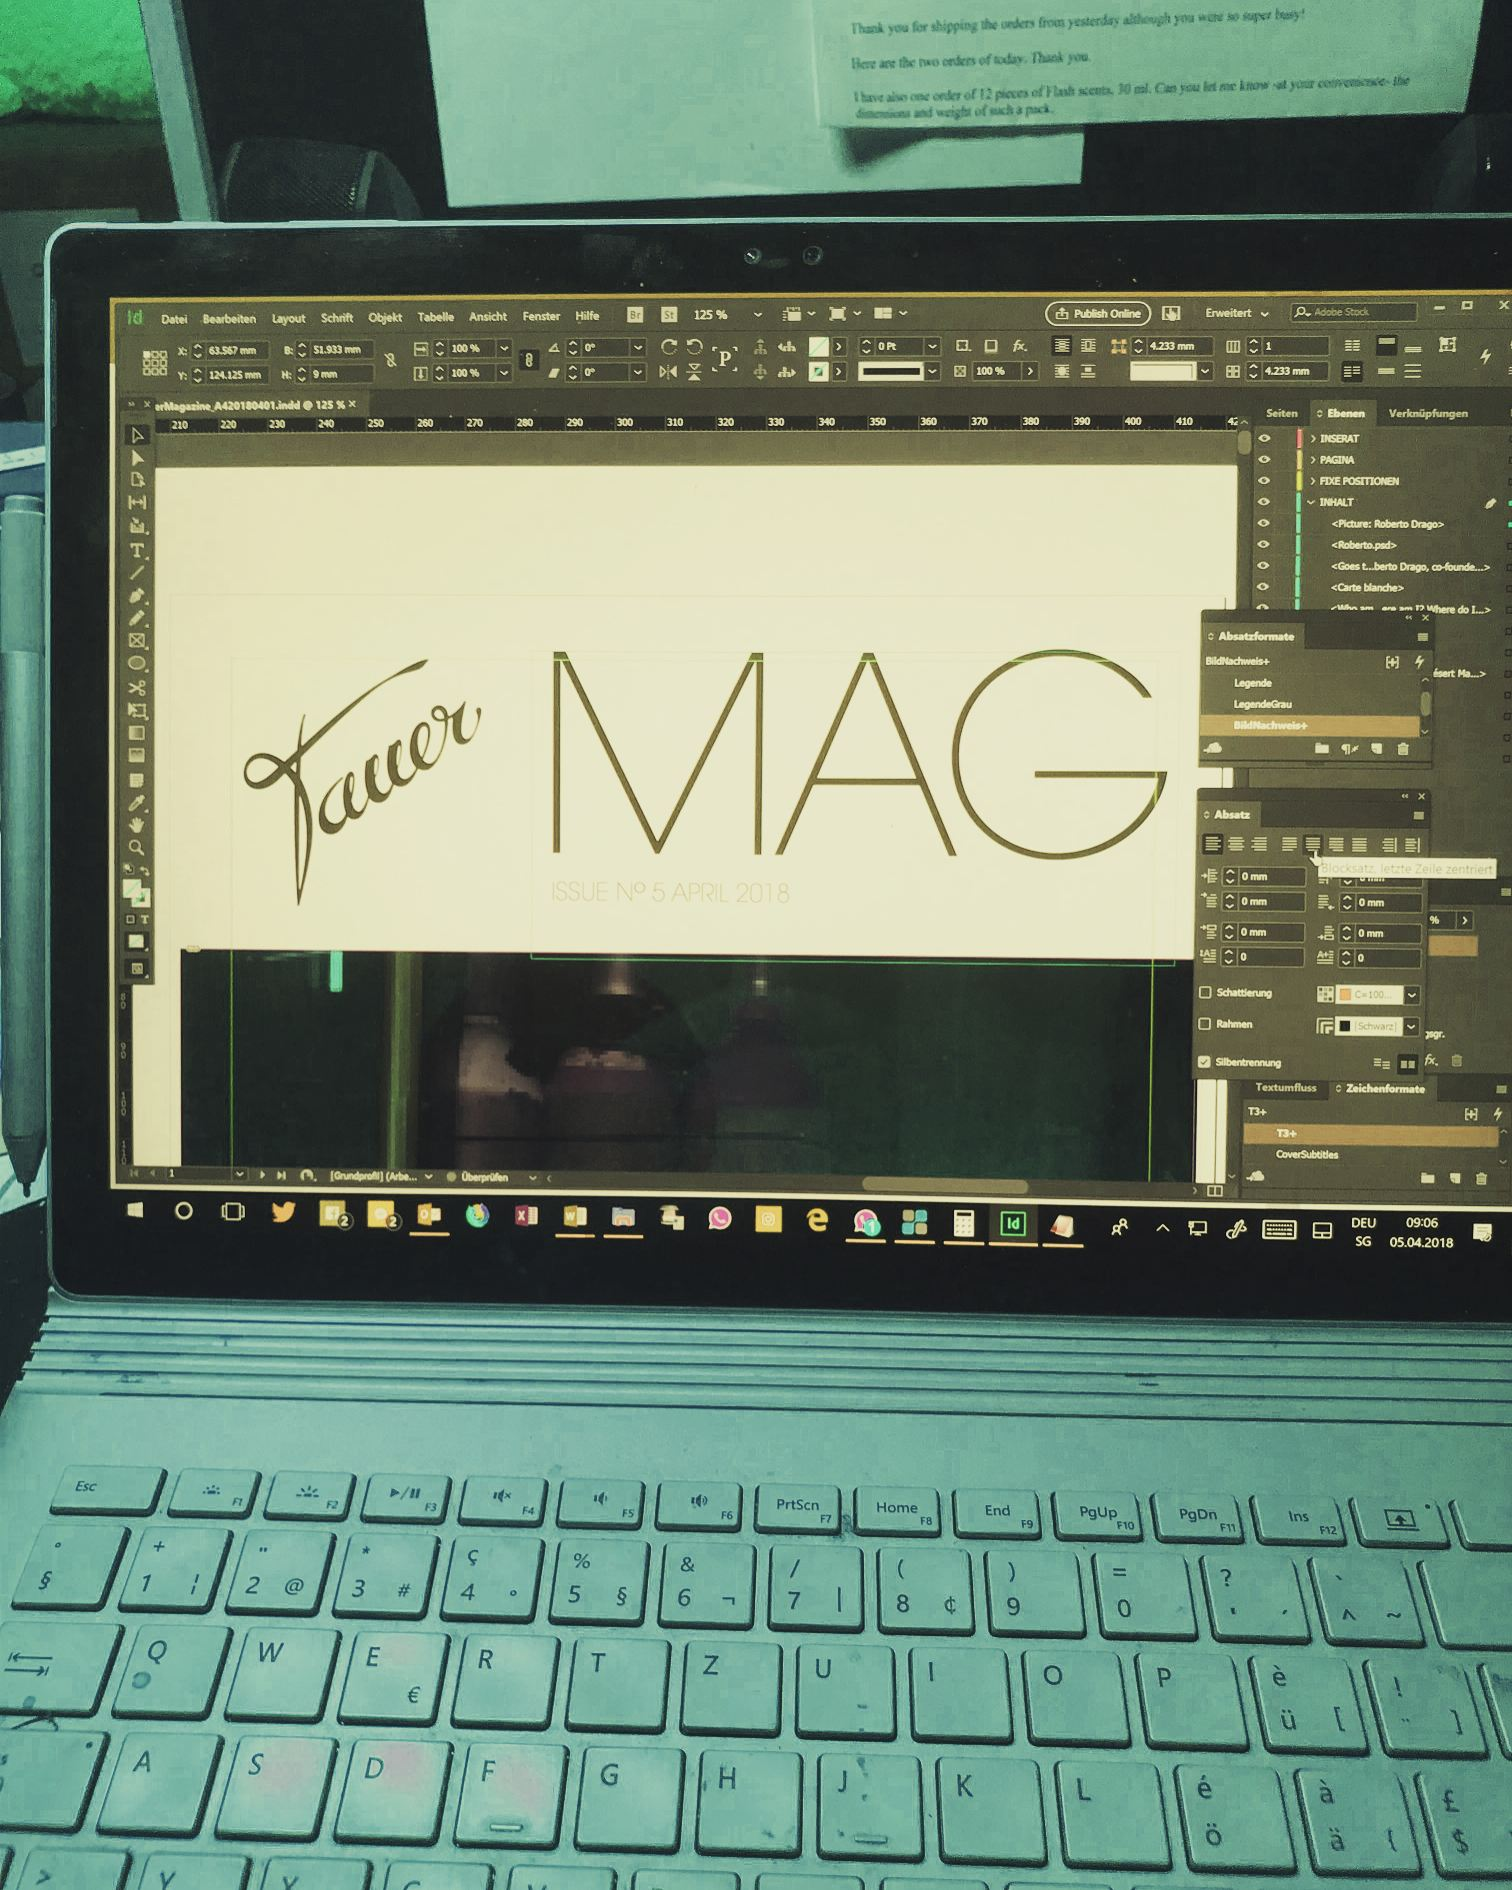 working on the next issue of the Tauer MAG